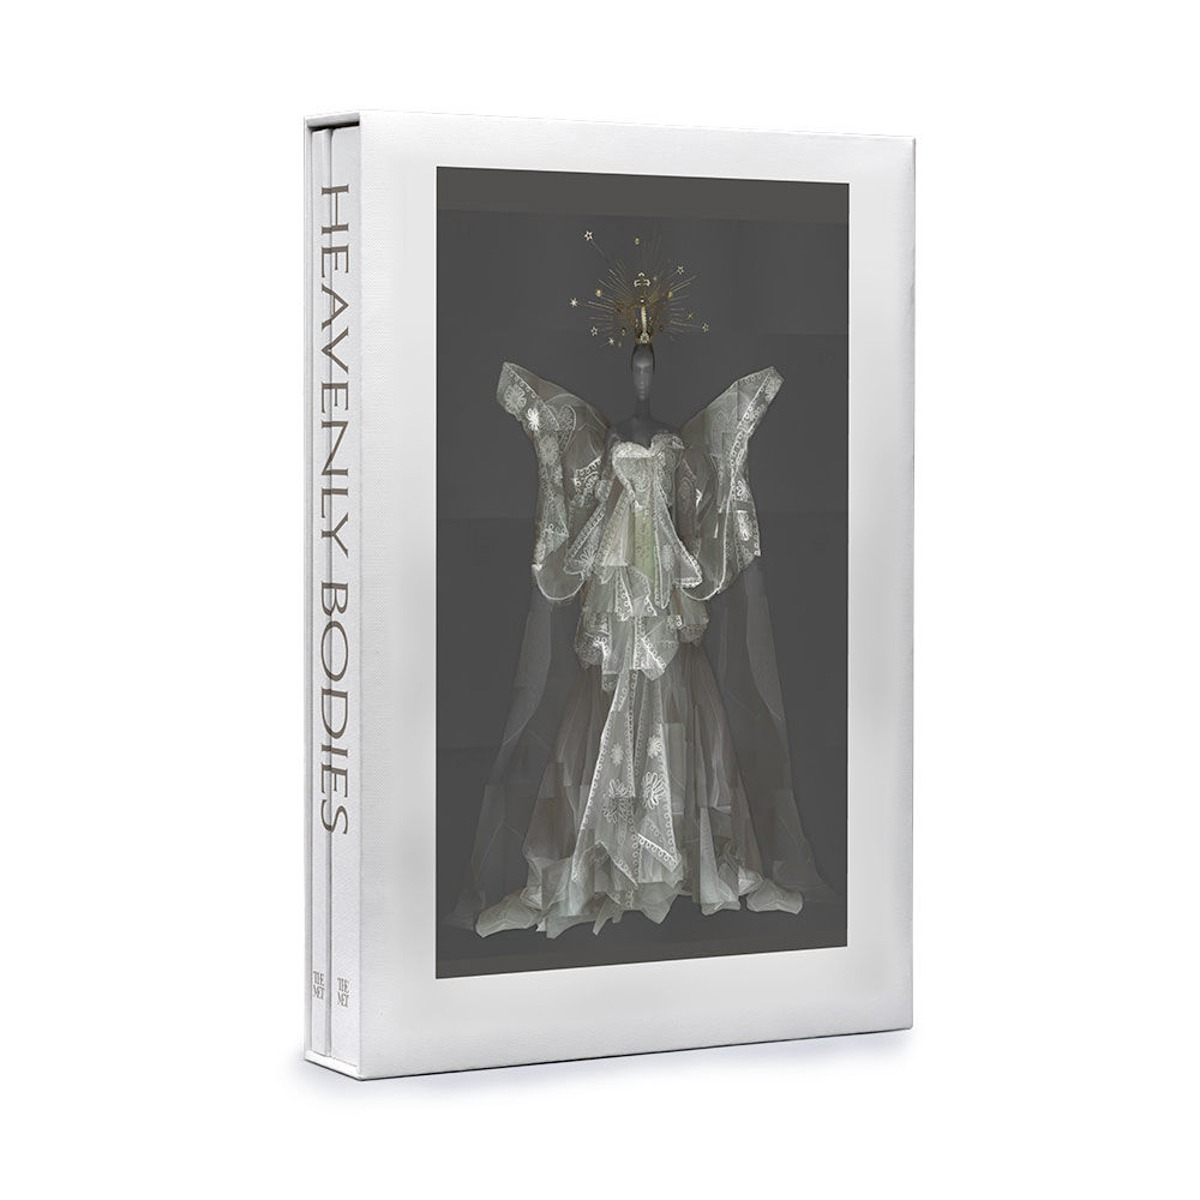 Heavenly Bodies - the Catalog - fashion - Yves Saint Laurent, The Met Museum, The Met, John Galliano, Jean-Paul Gaultier, Fashion, Christian Lacroix, Chanel, Book Review, balenciaga, Azzedine Alaia, art book, 2018